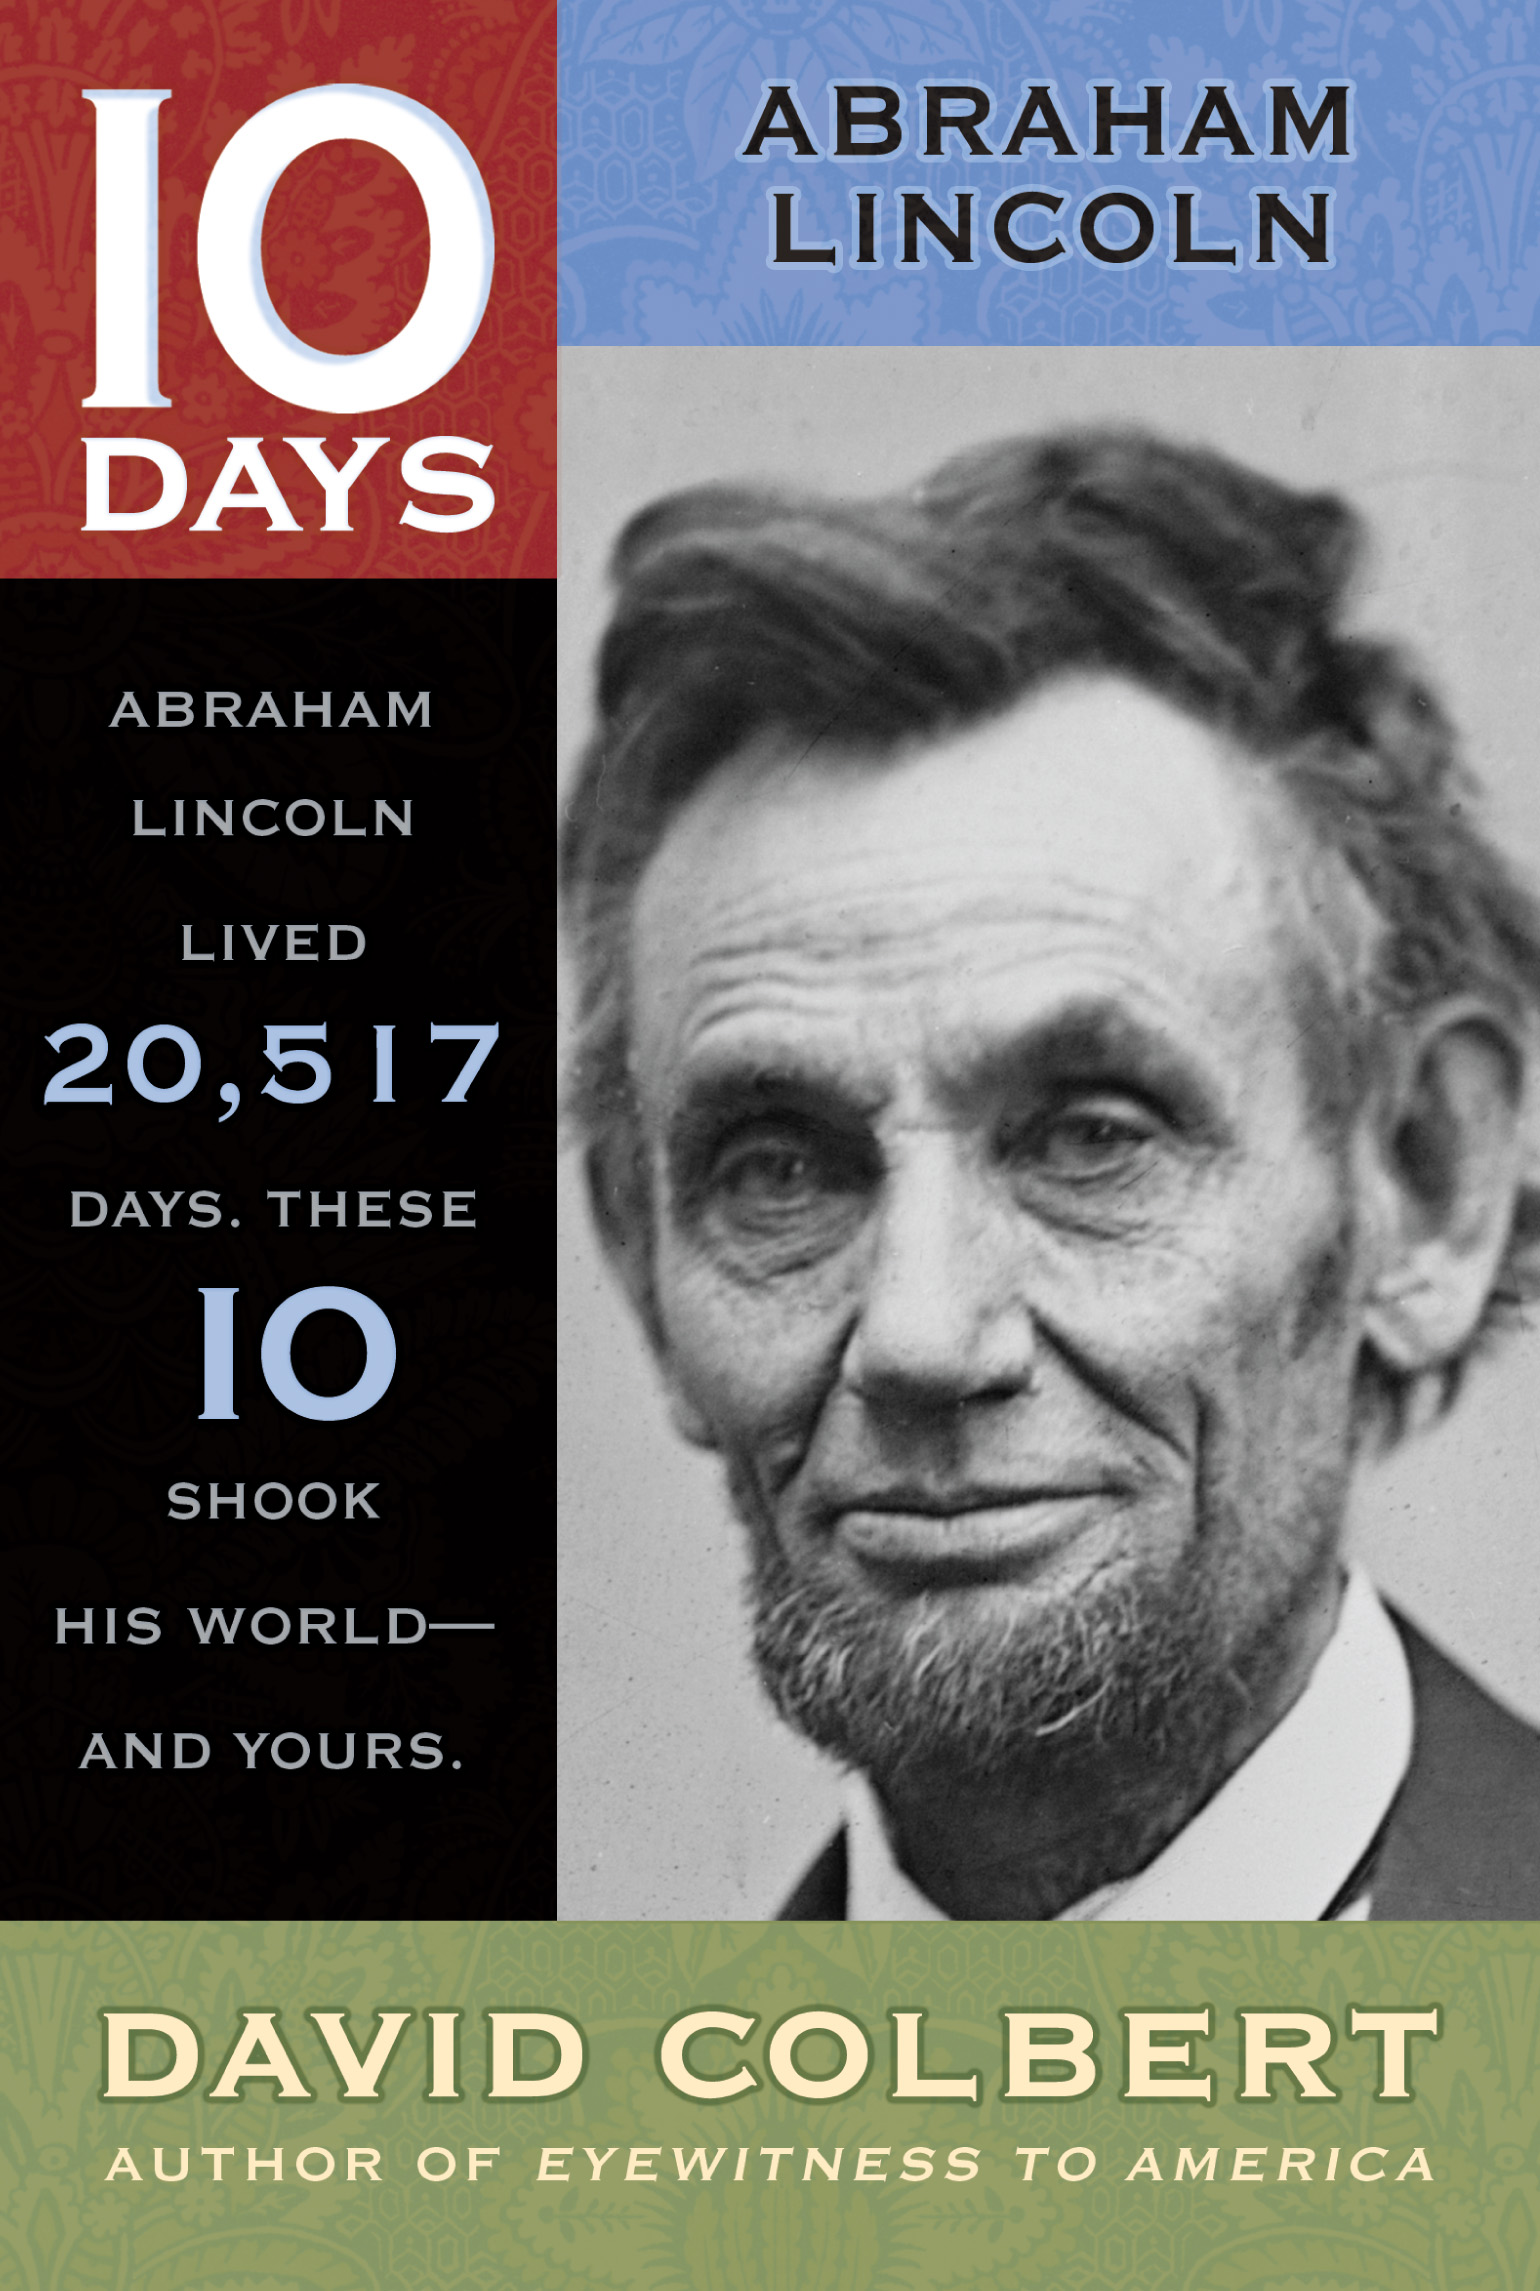 abraham lincoln as an adult